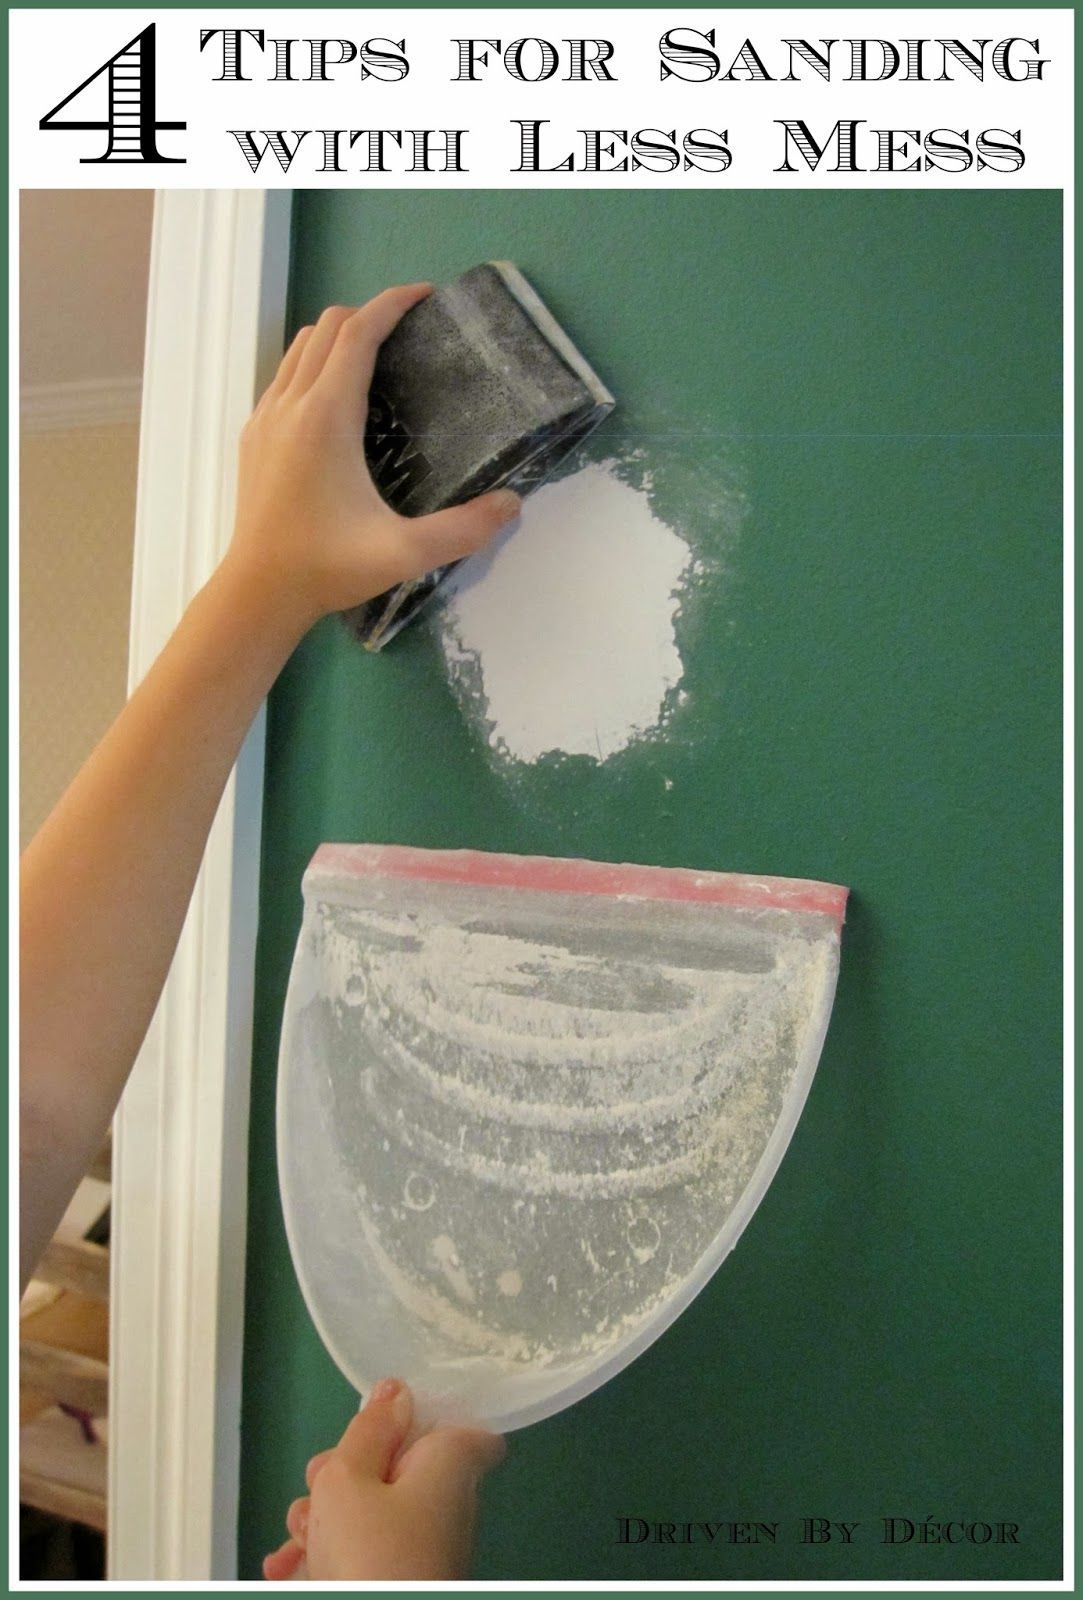 Sanding Drywall Without Dust Or At Least Less Dust Four Tips Driven By Decor Sanding Clever Hacks